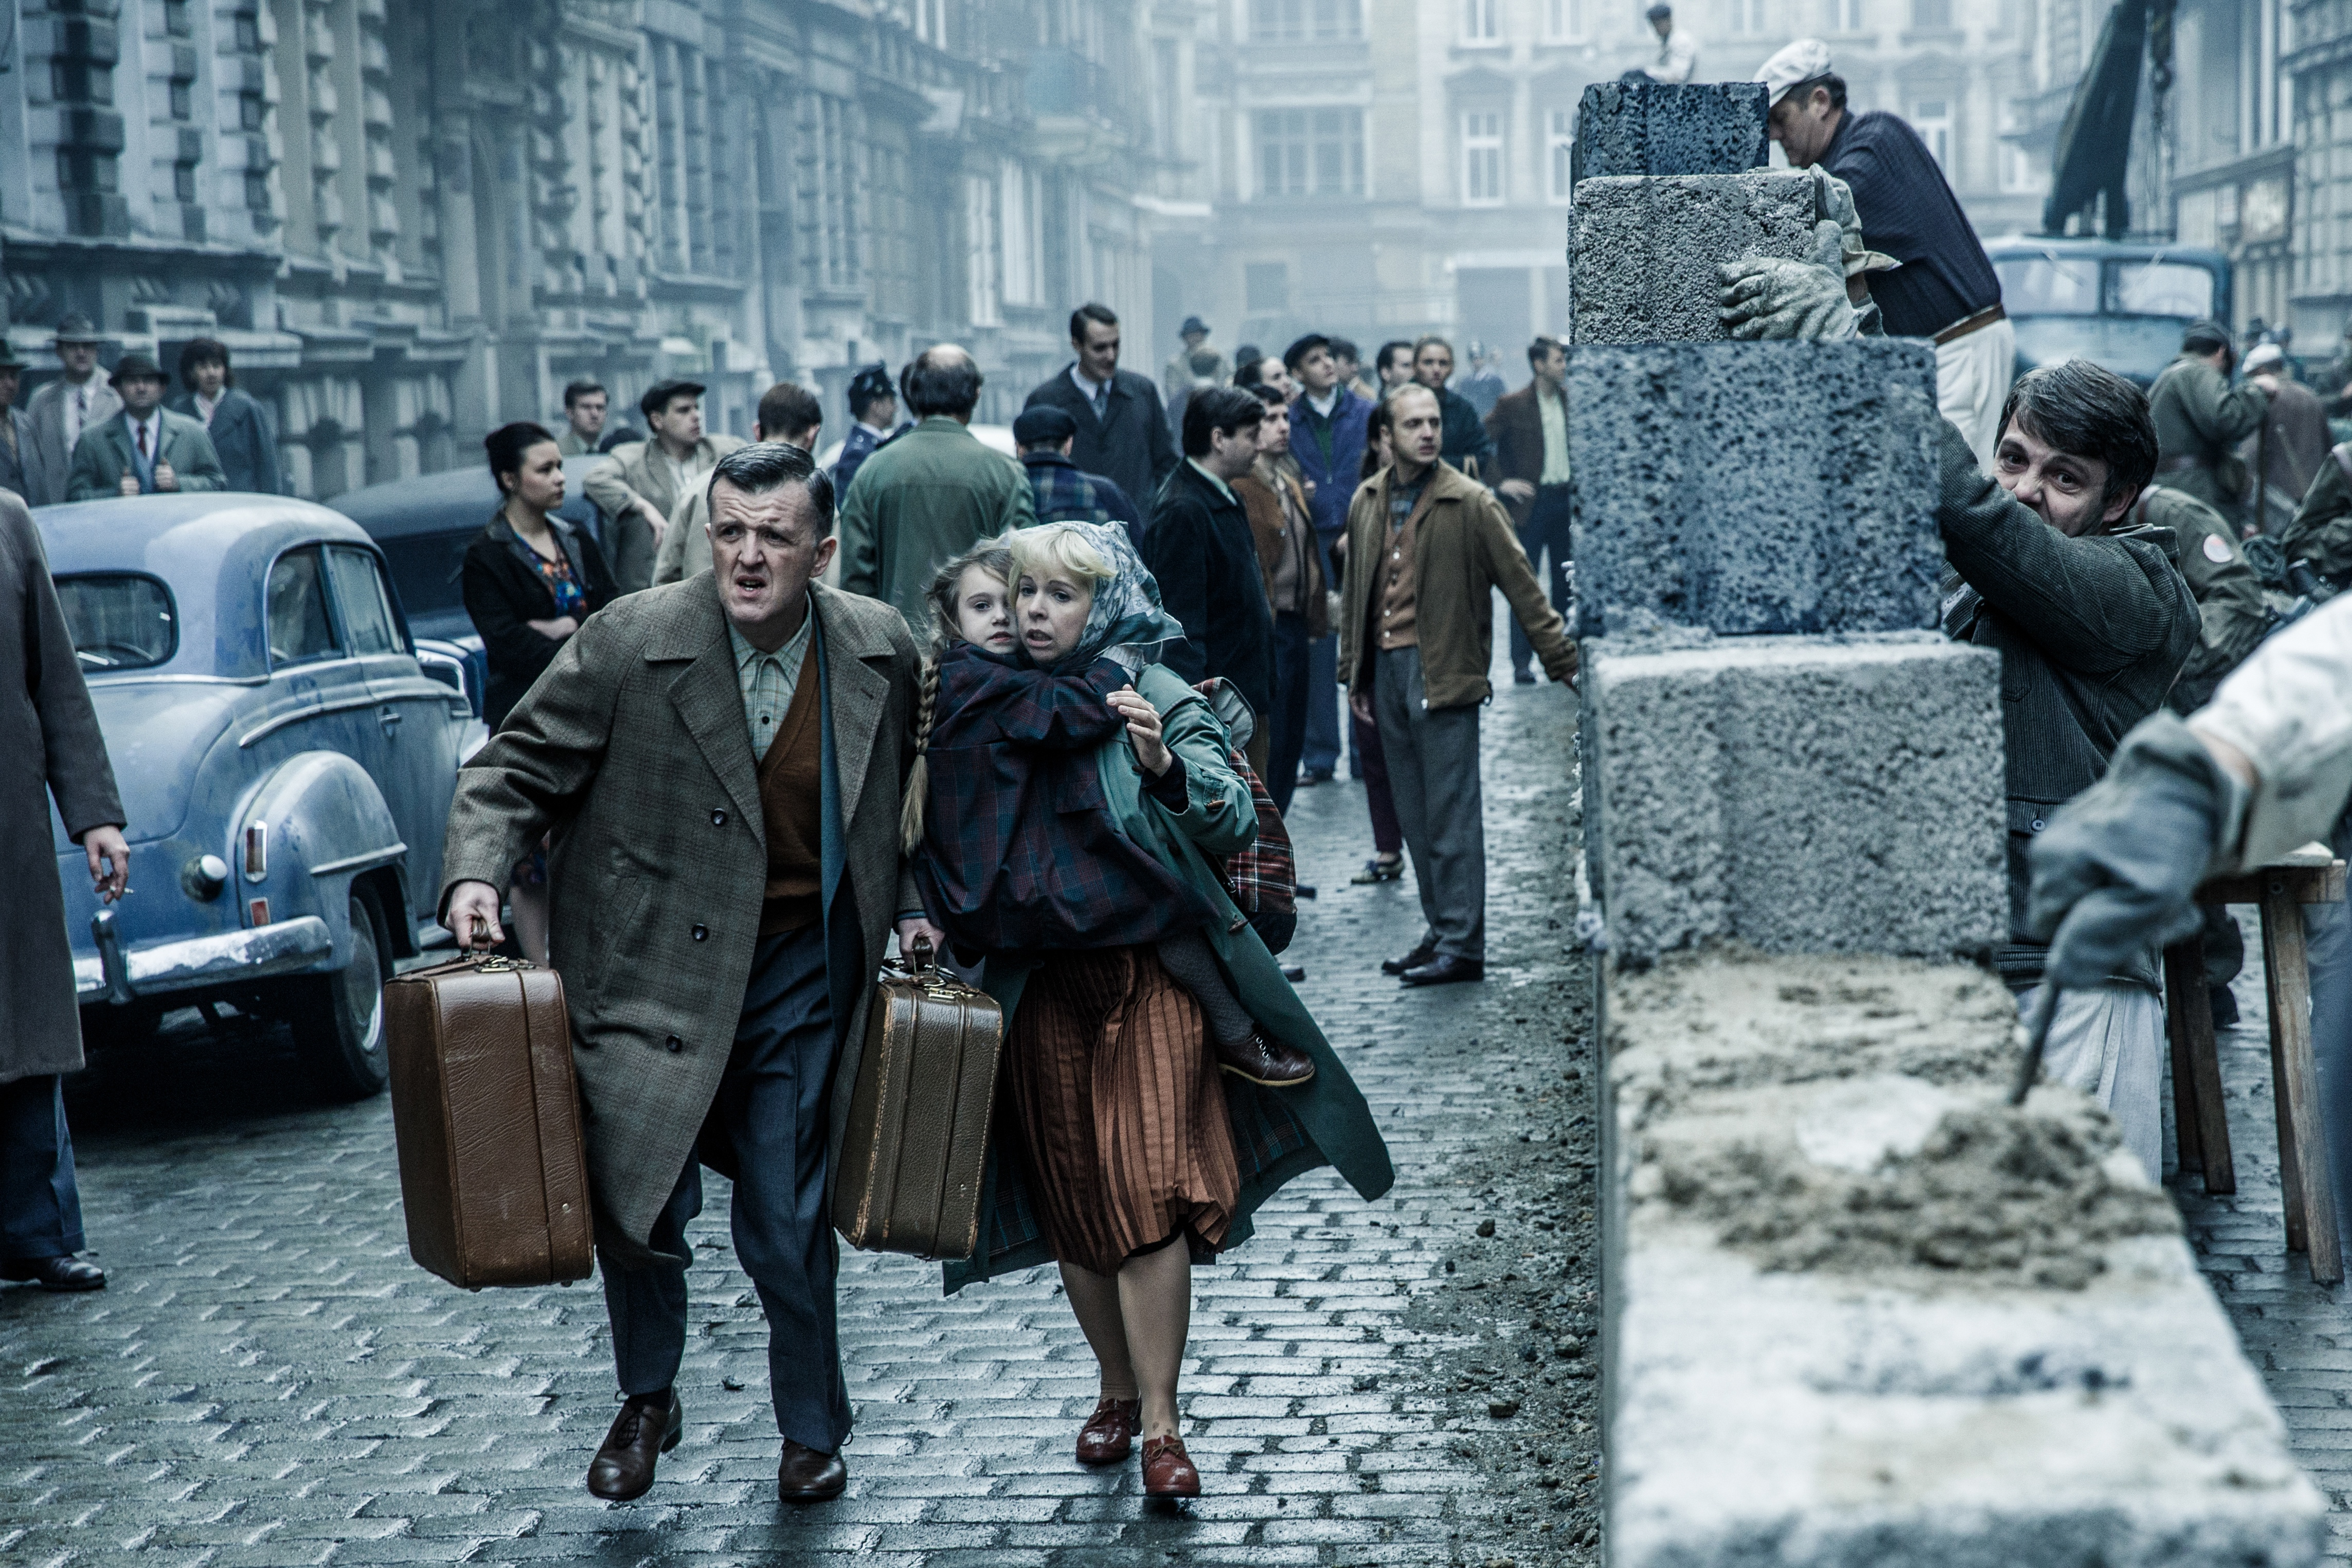 DreamWorks Pictures/Fox 2000 PIctures' BRIDGE OF SPIES, directed by Steven Spielberg, is the story of James Donovan, an insurance lawyer from Brooklyn who finds himself thrust into the center of the Cold War when the CIA enlists his support to negotiate the release of a captured American U-2 pilot.